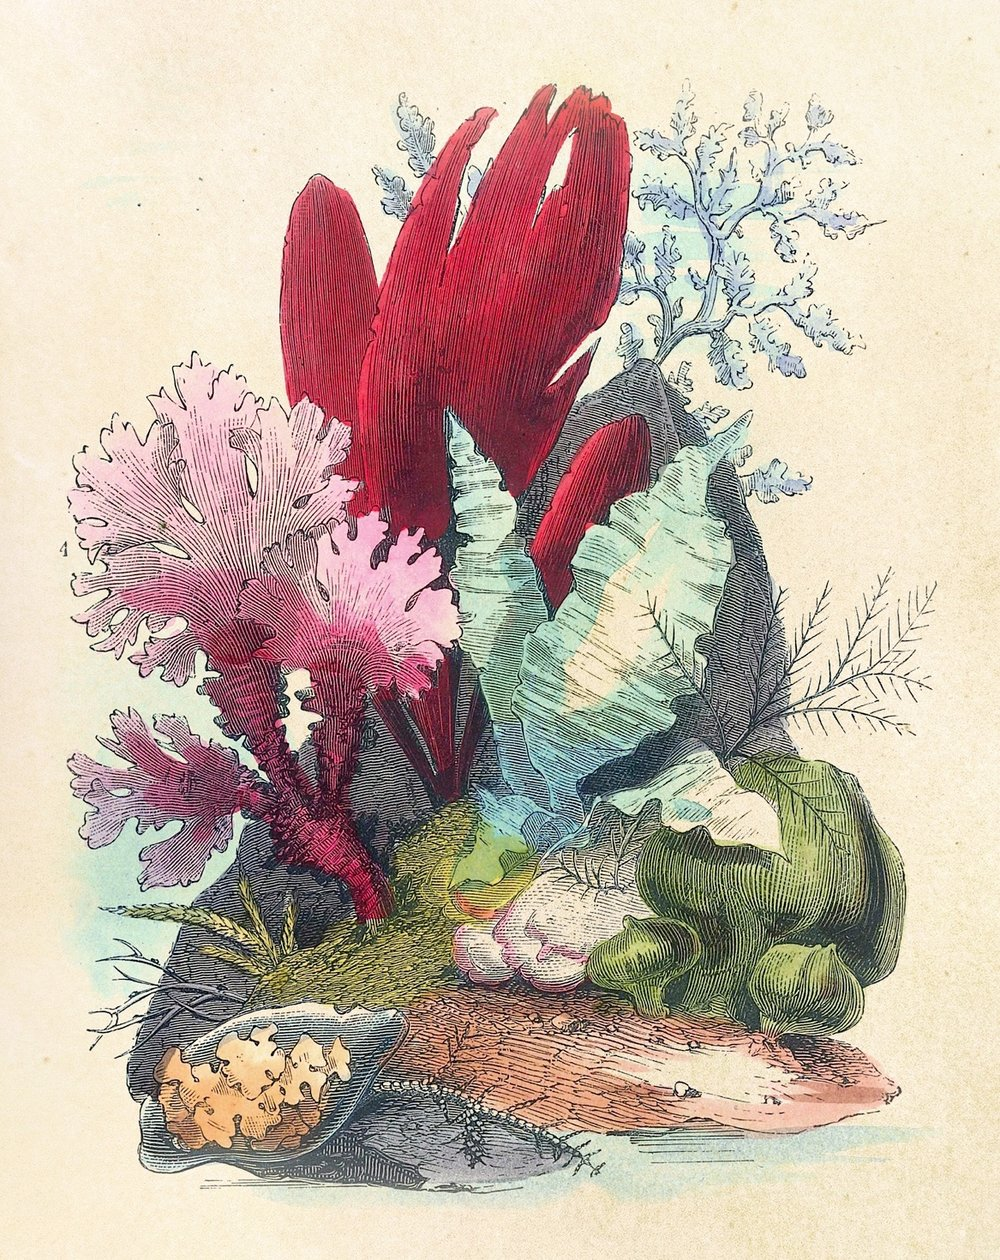 Ocean Gardens - Ocean Gardens : the history of the marine aquarium and the best methods now adopted for its establishment and preservation. Henry Noel Humphreys, 1857, cat. Ca 9.A combination of practical advice and beautiful illustrations of aquariums and their contents. This first edition from 1857 is in need of repair and rebinding, and is eligible for sponsorship through the library's Adopt-a-Book scheme.